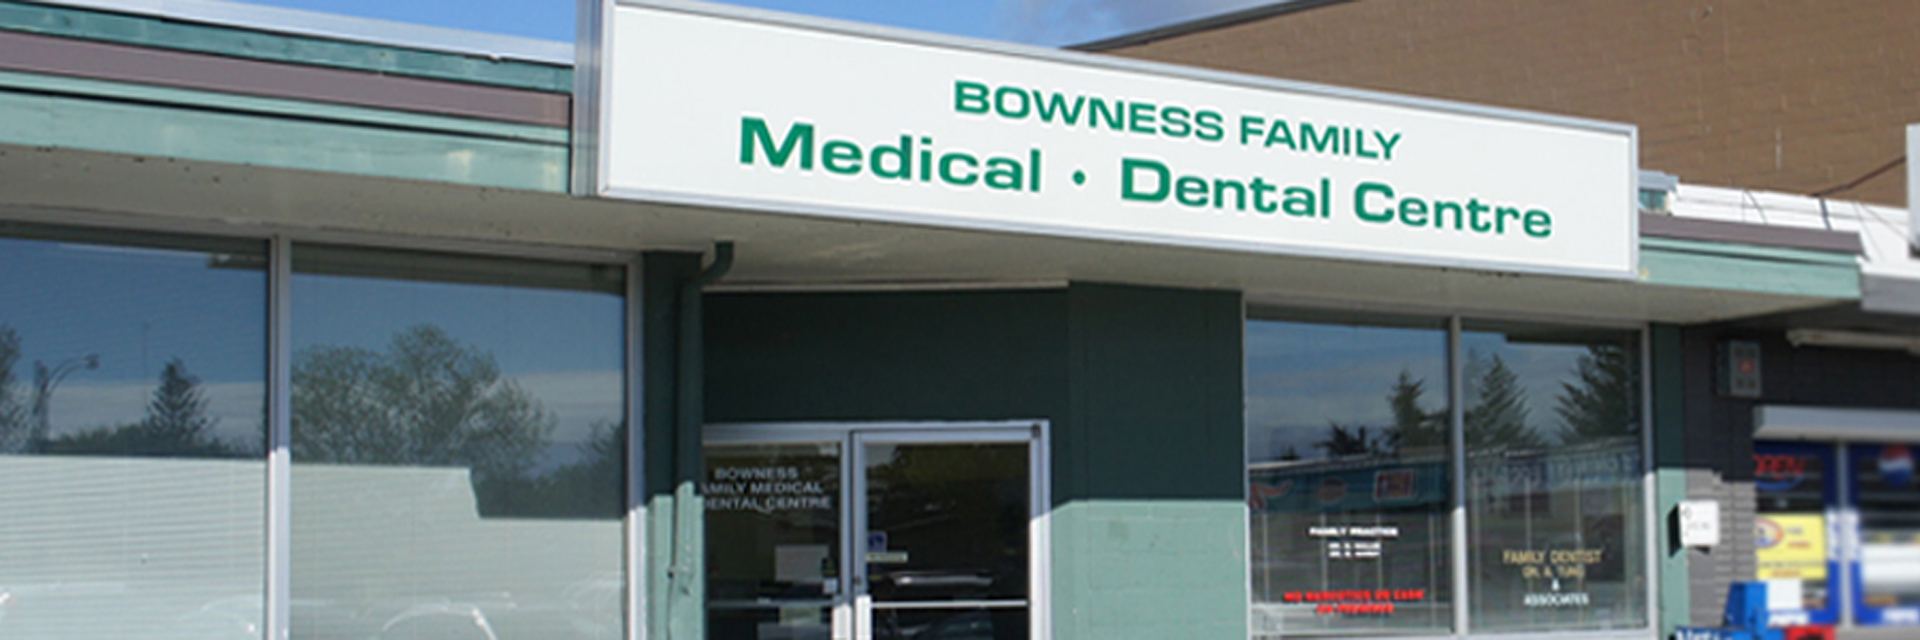 Bowness Dental Centre